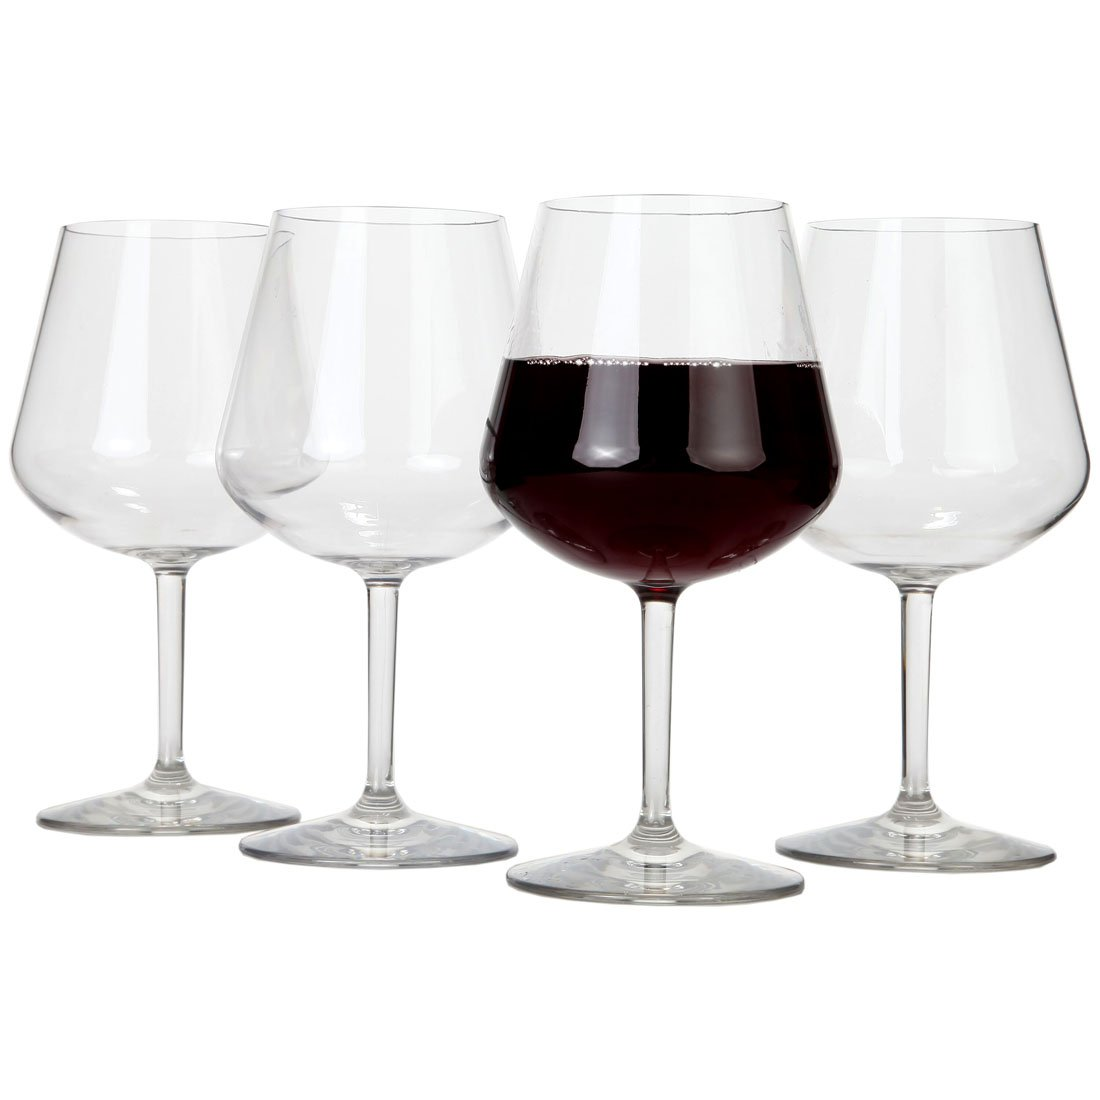 Lily's Home Chef Collection Unbreakable Pinot Noir and Burgundy Red Wine Glasses, Made of Shatterproof Tritan Plastic, Ideal for Indoor and Outdoor Use (22 oz. Each, Set of 4)